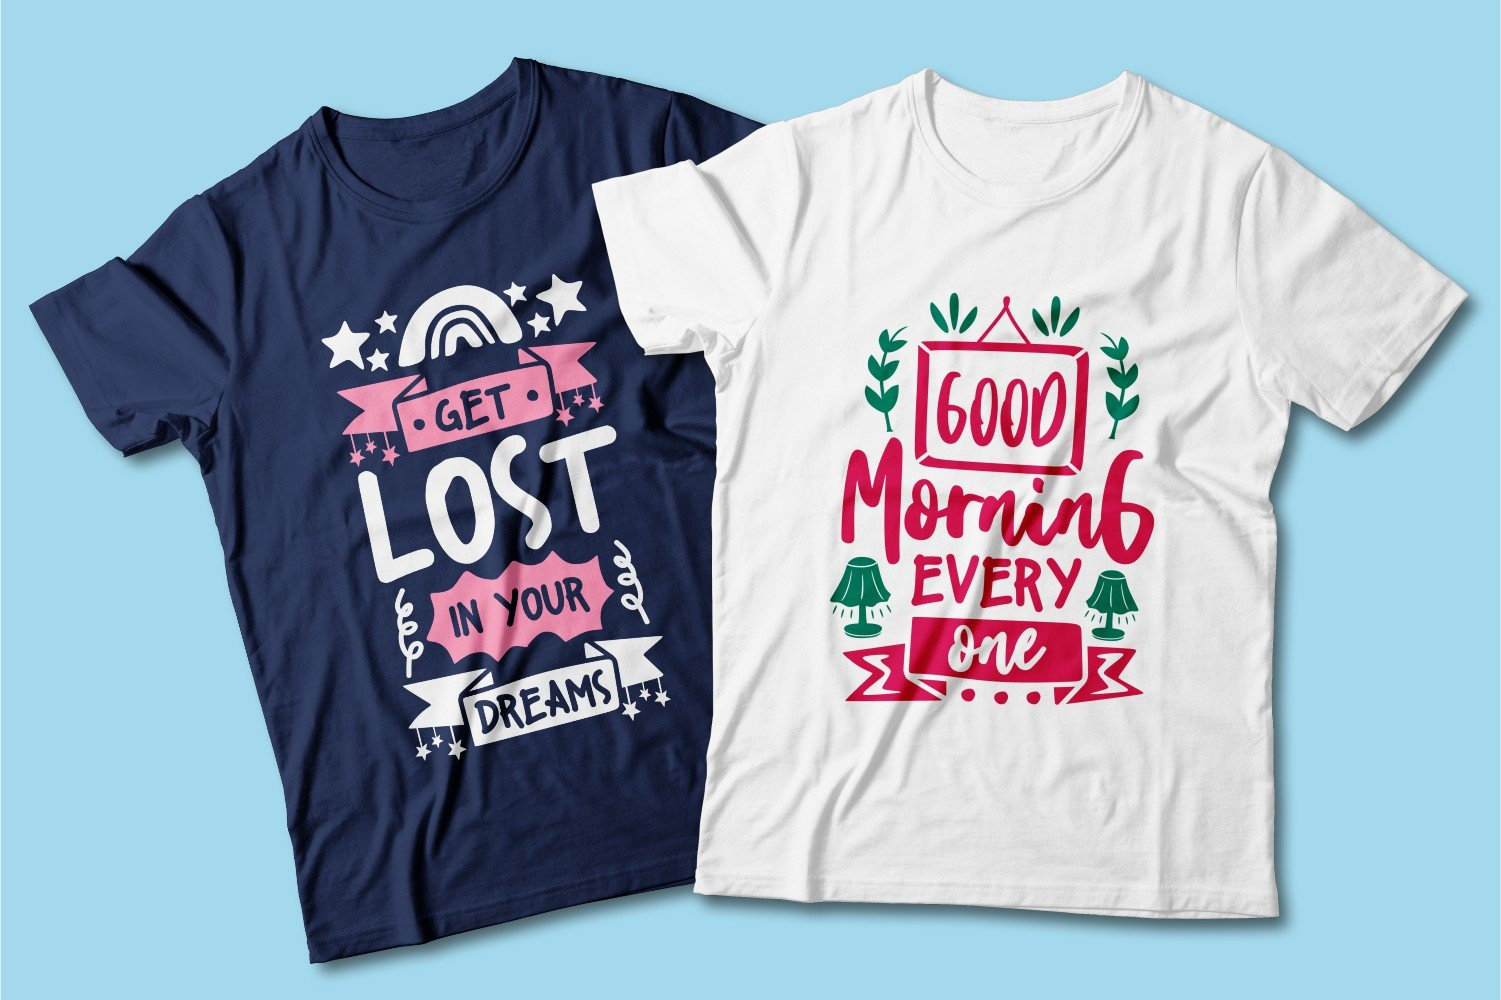 Blue and white T-shirts with beautiful lettering.